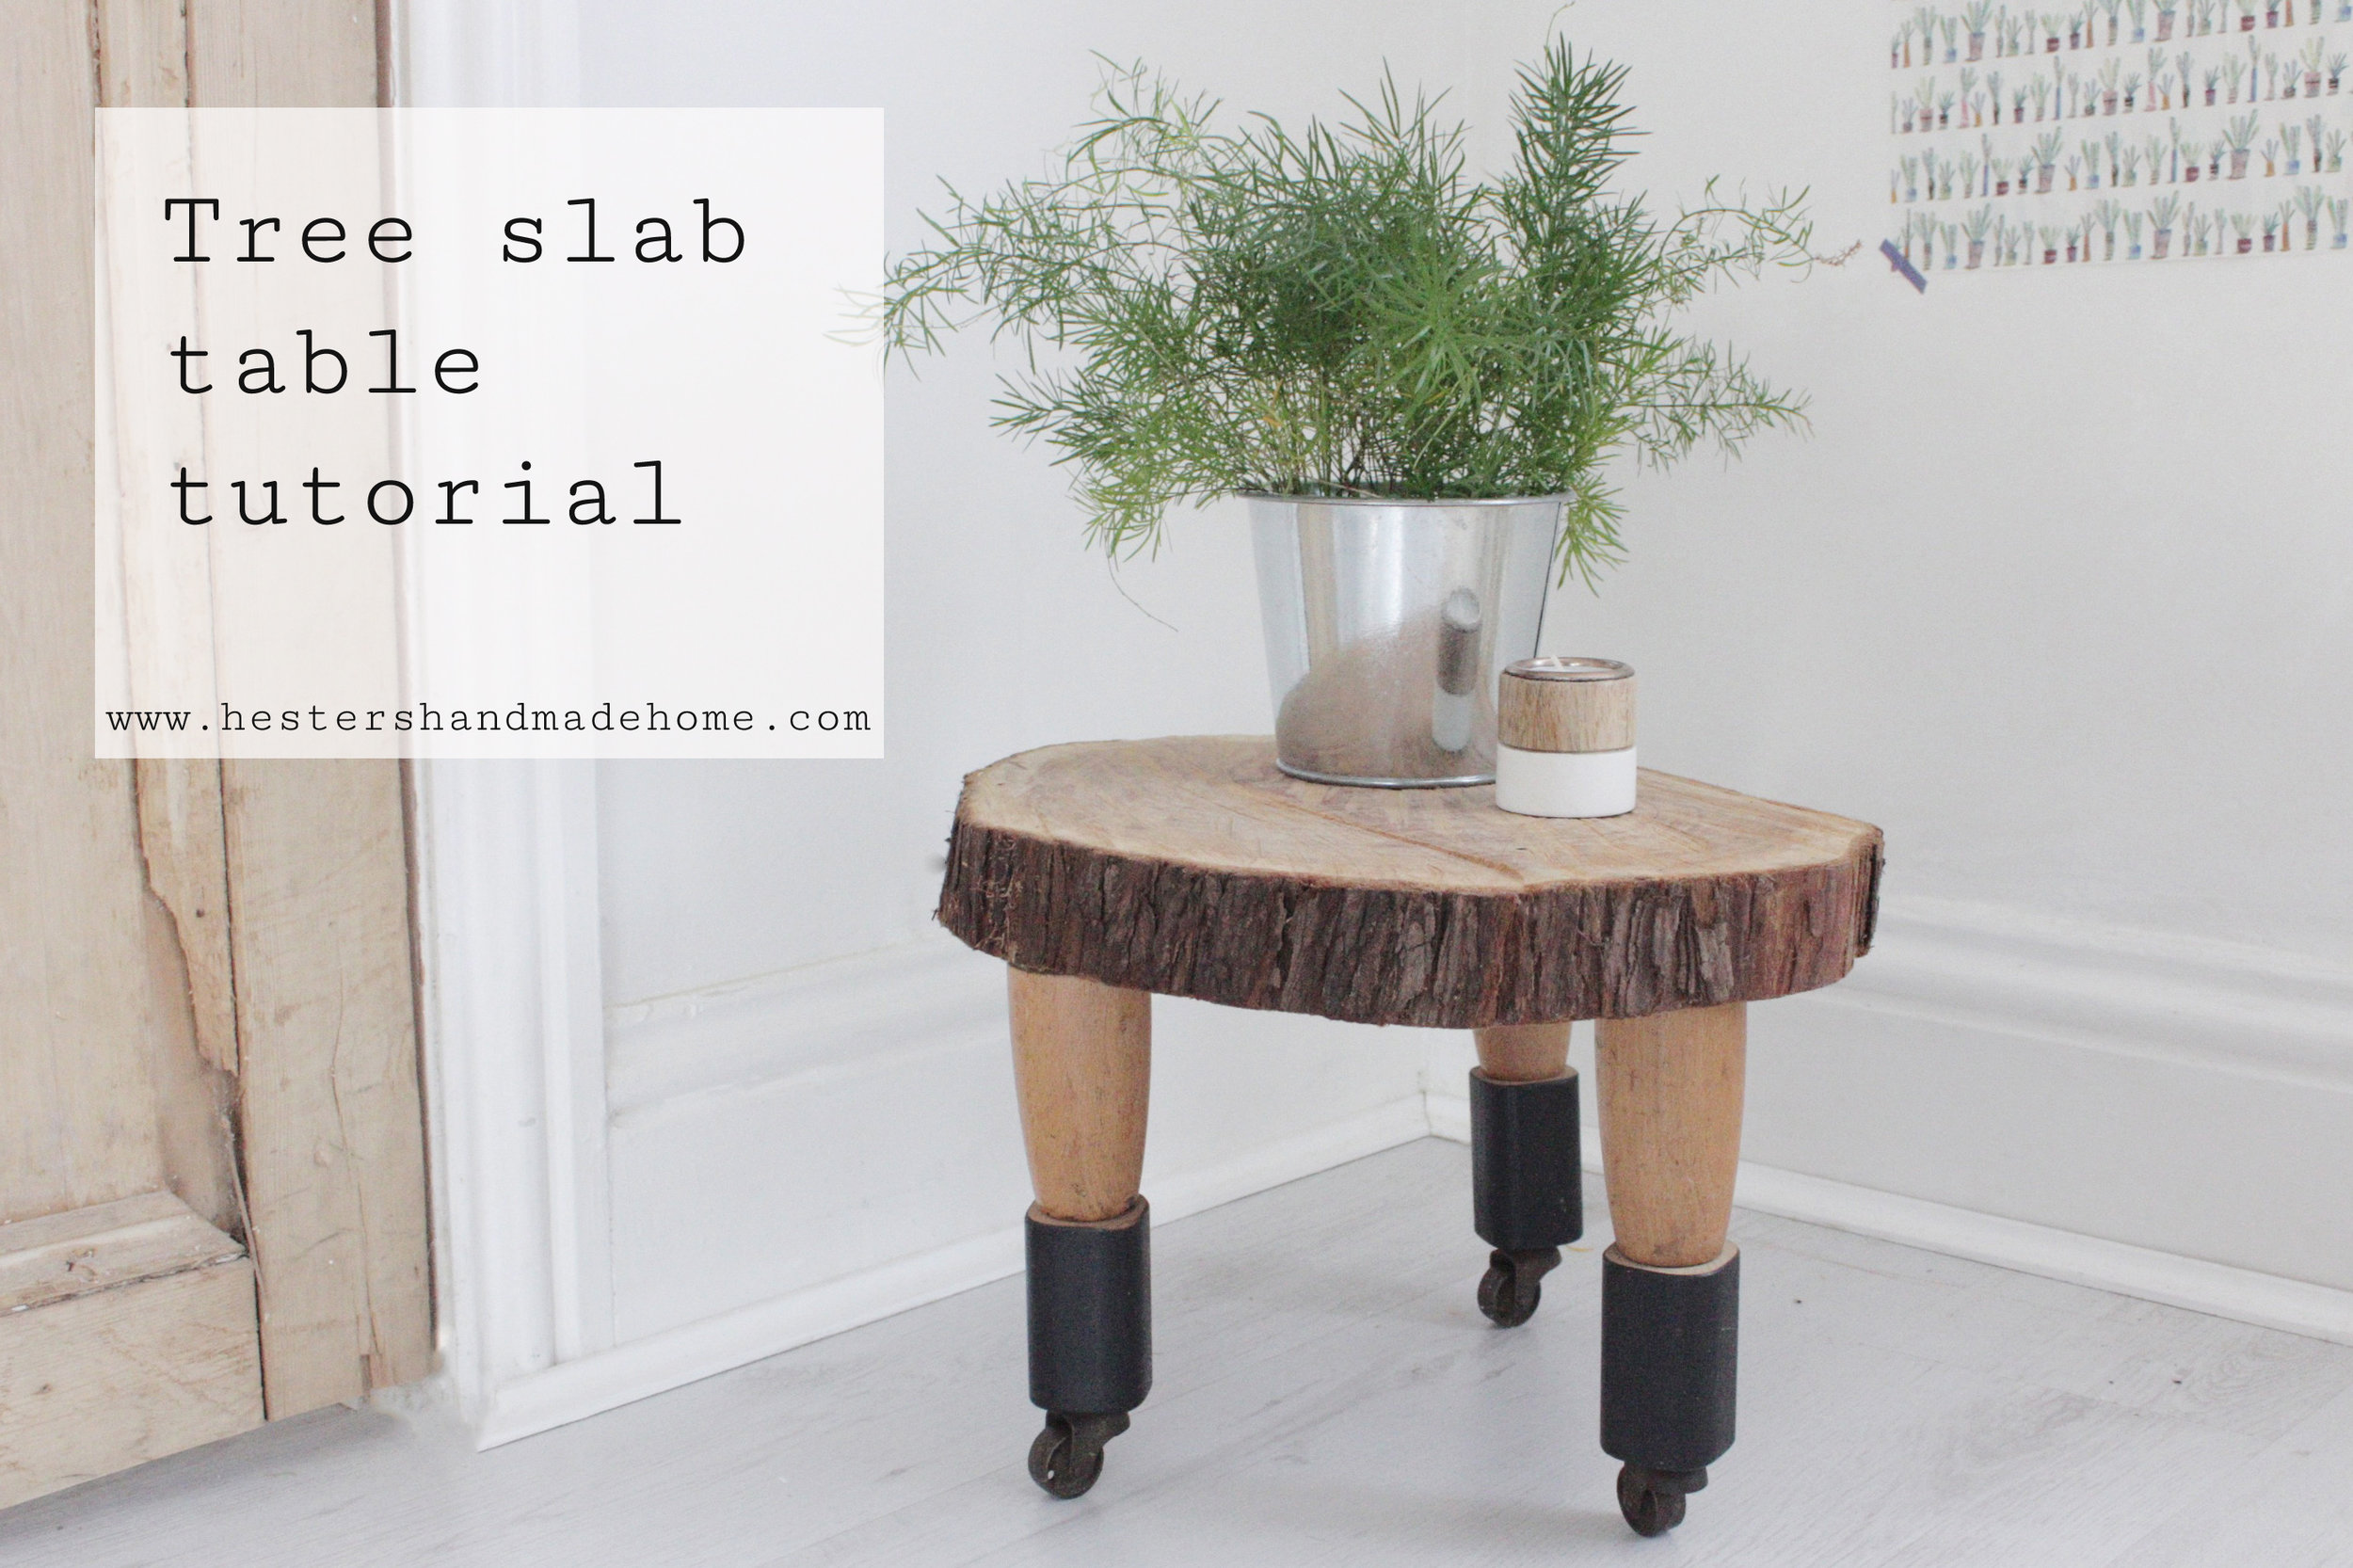 Turn a tree slab into a table, tutorial by Hester's handmade Home